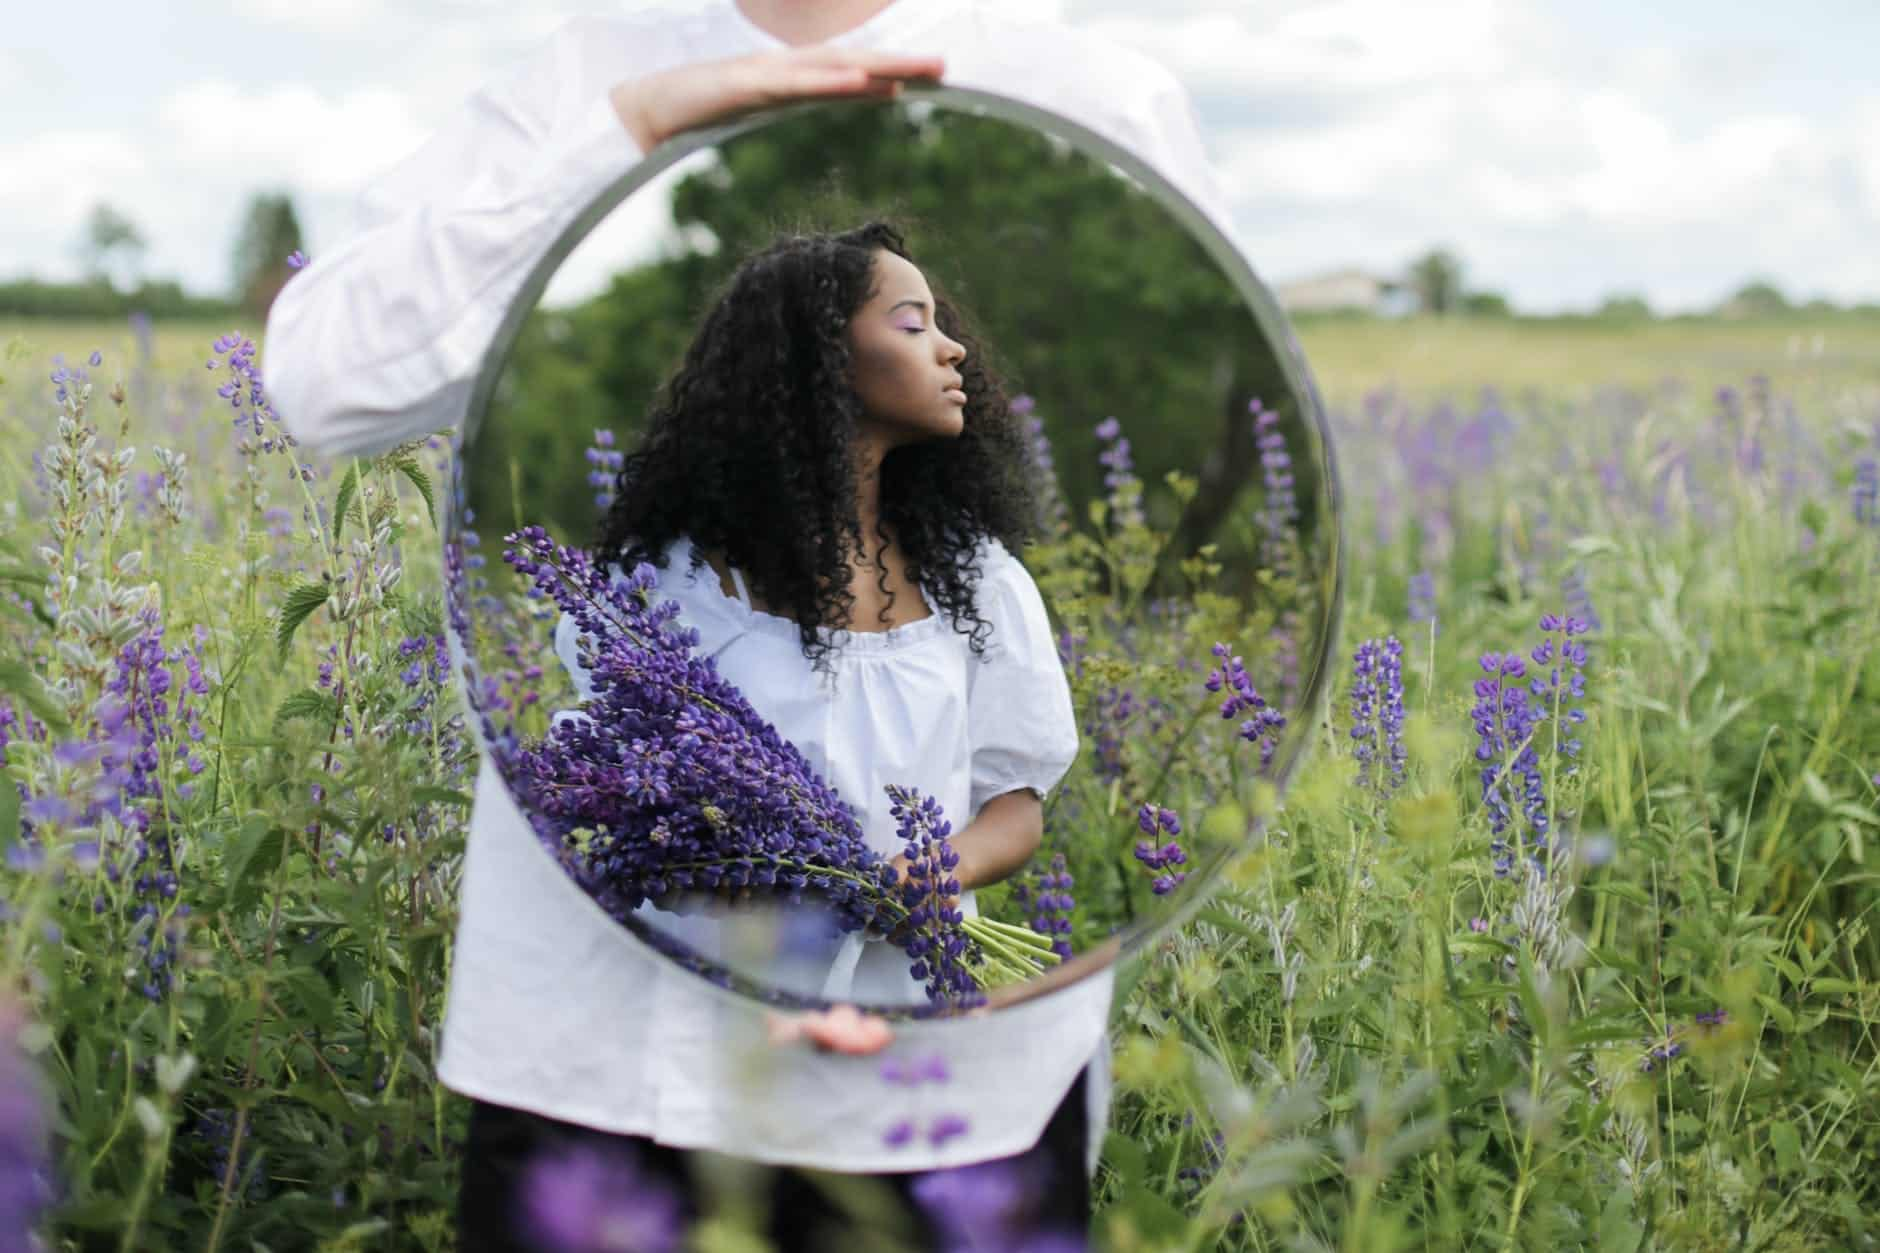 woman in white shirt holding purple flowers